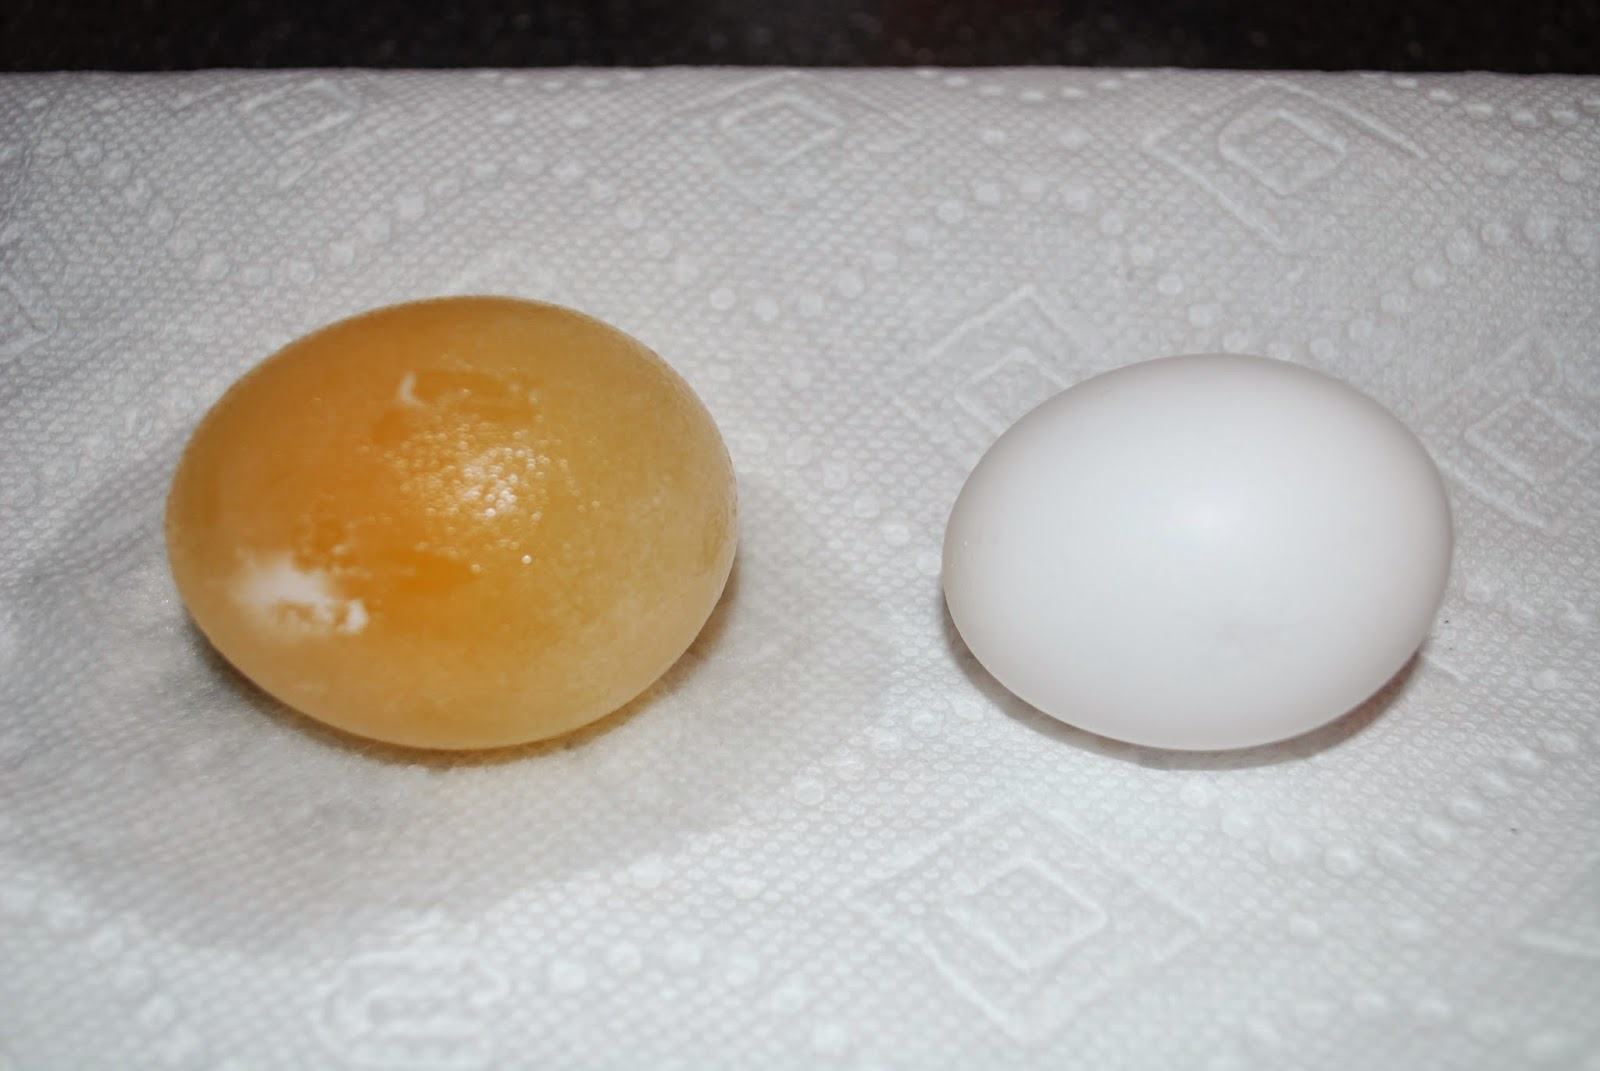 DSC 0348 - Eggmosis - Teaching Selectively Permeable Membranes with Eggs